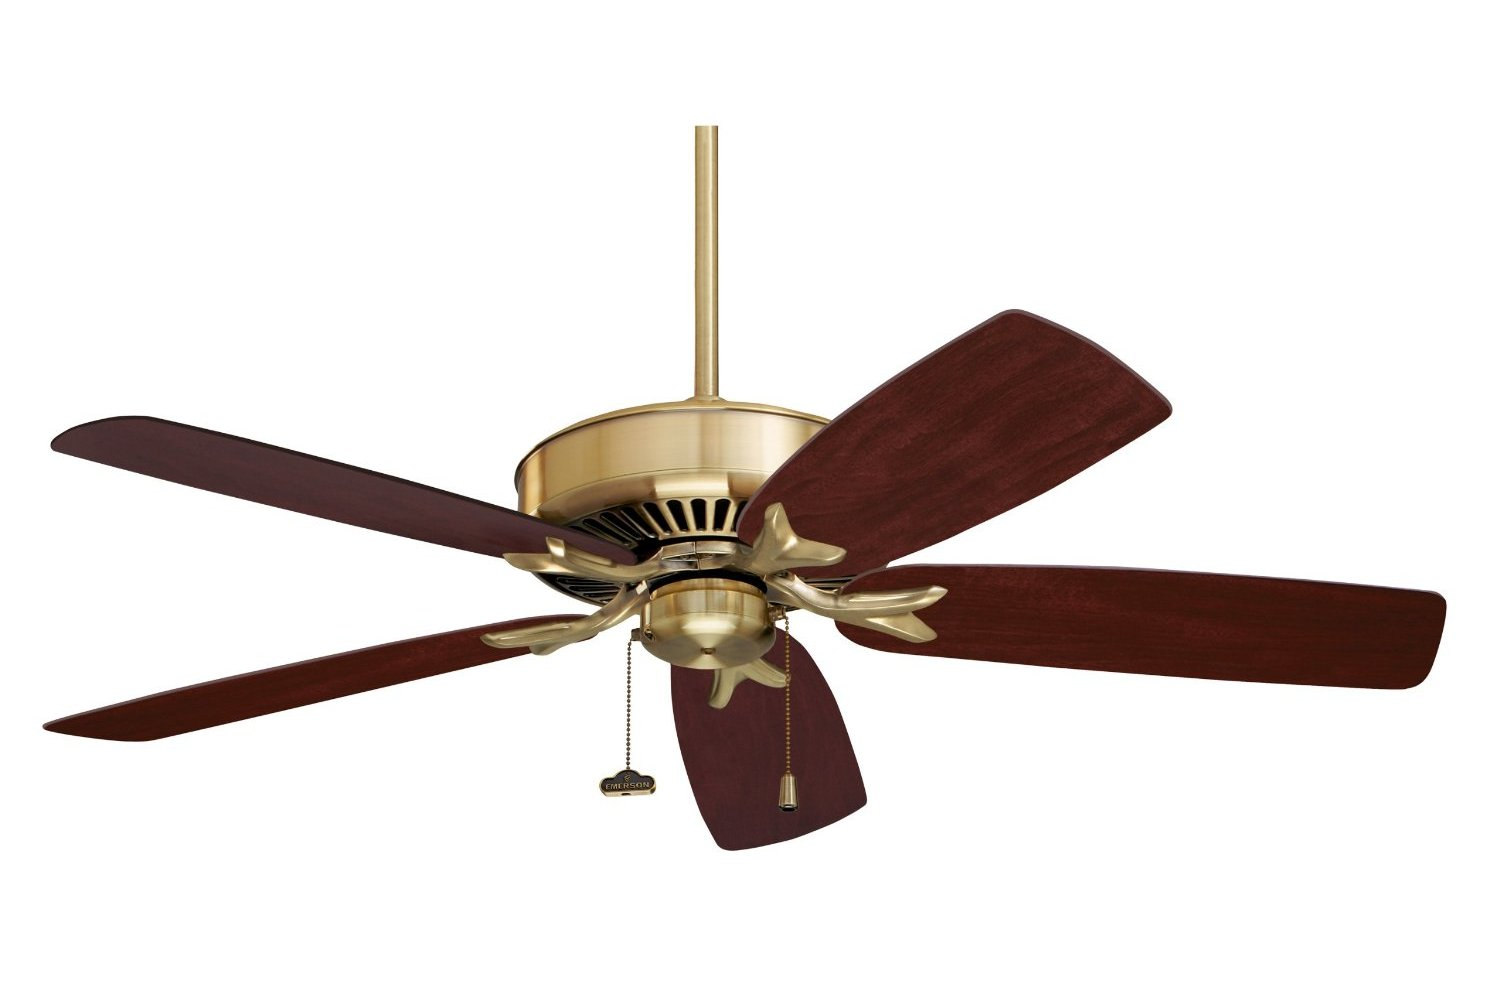 This traditional, indoor ceiling fan features accent lighting to cast ...